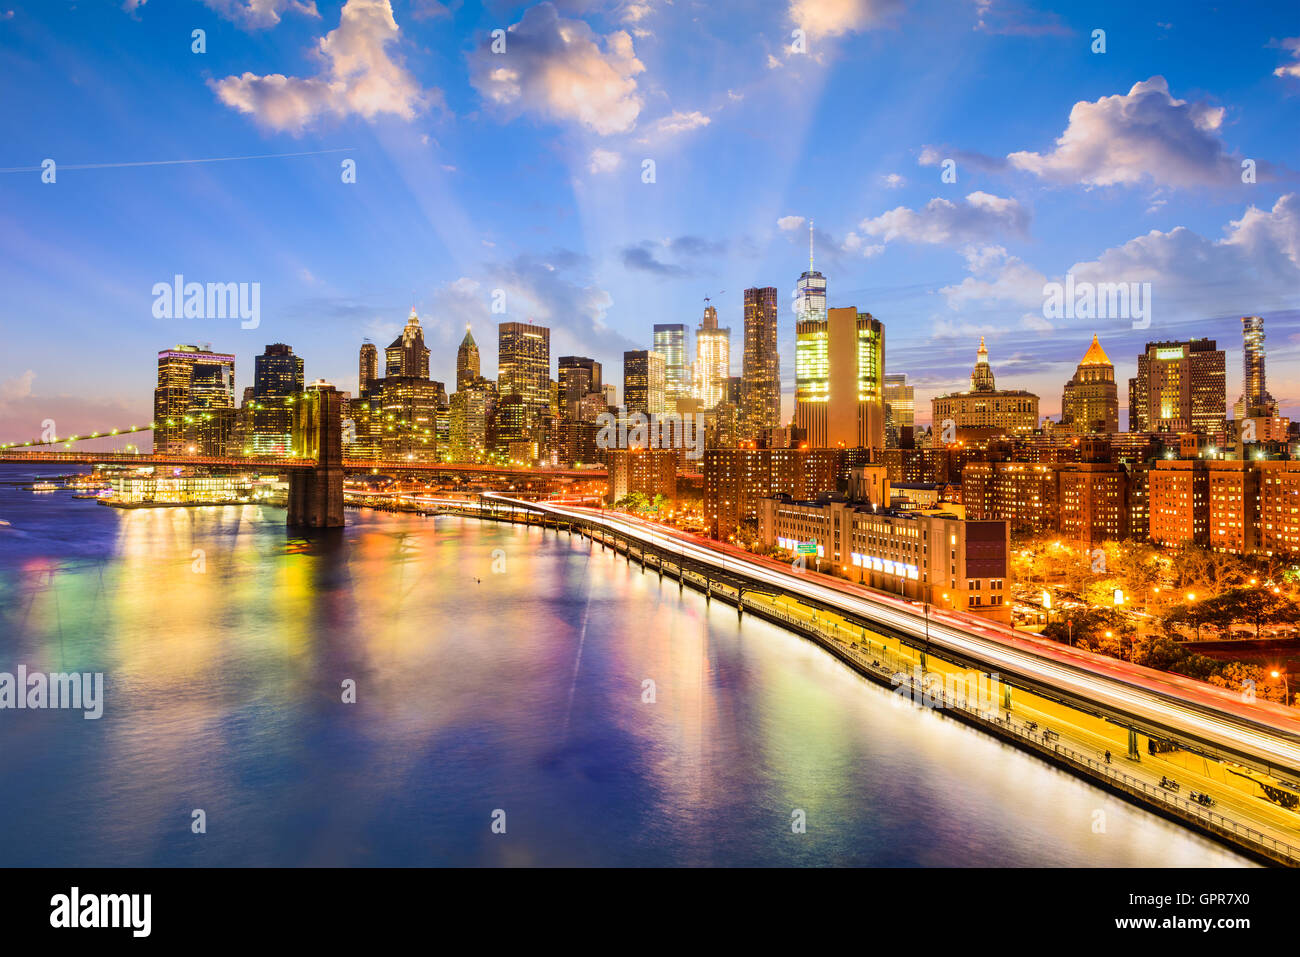 New York City skyline over the East River. - Stock Image